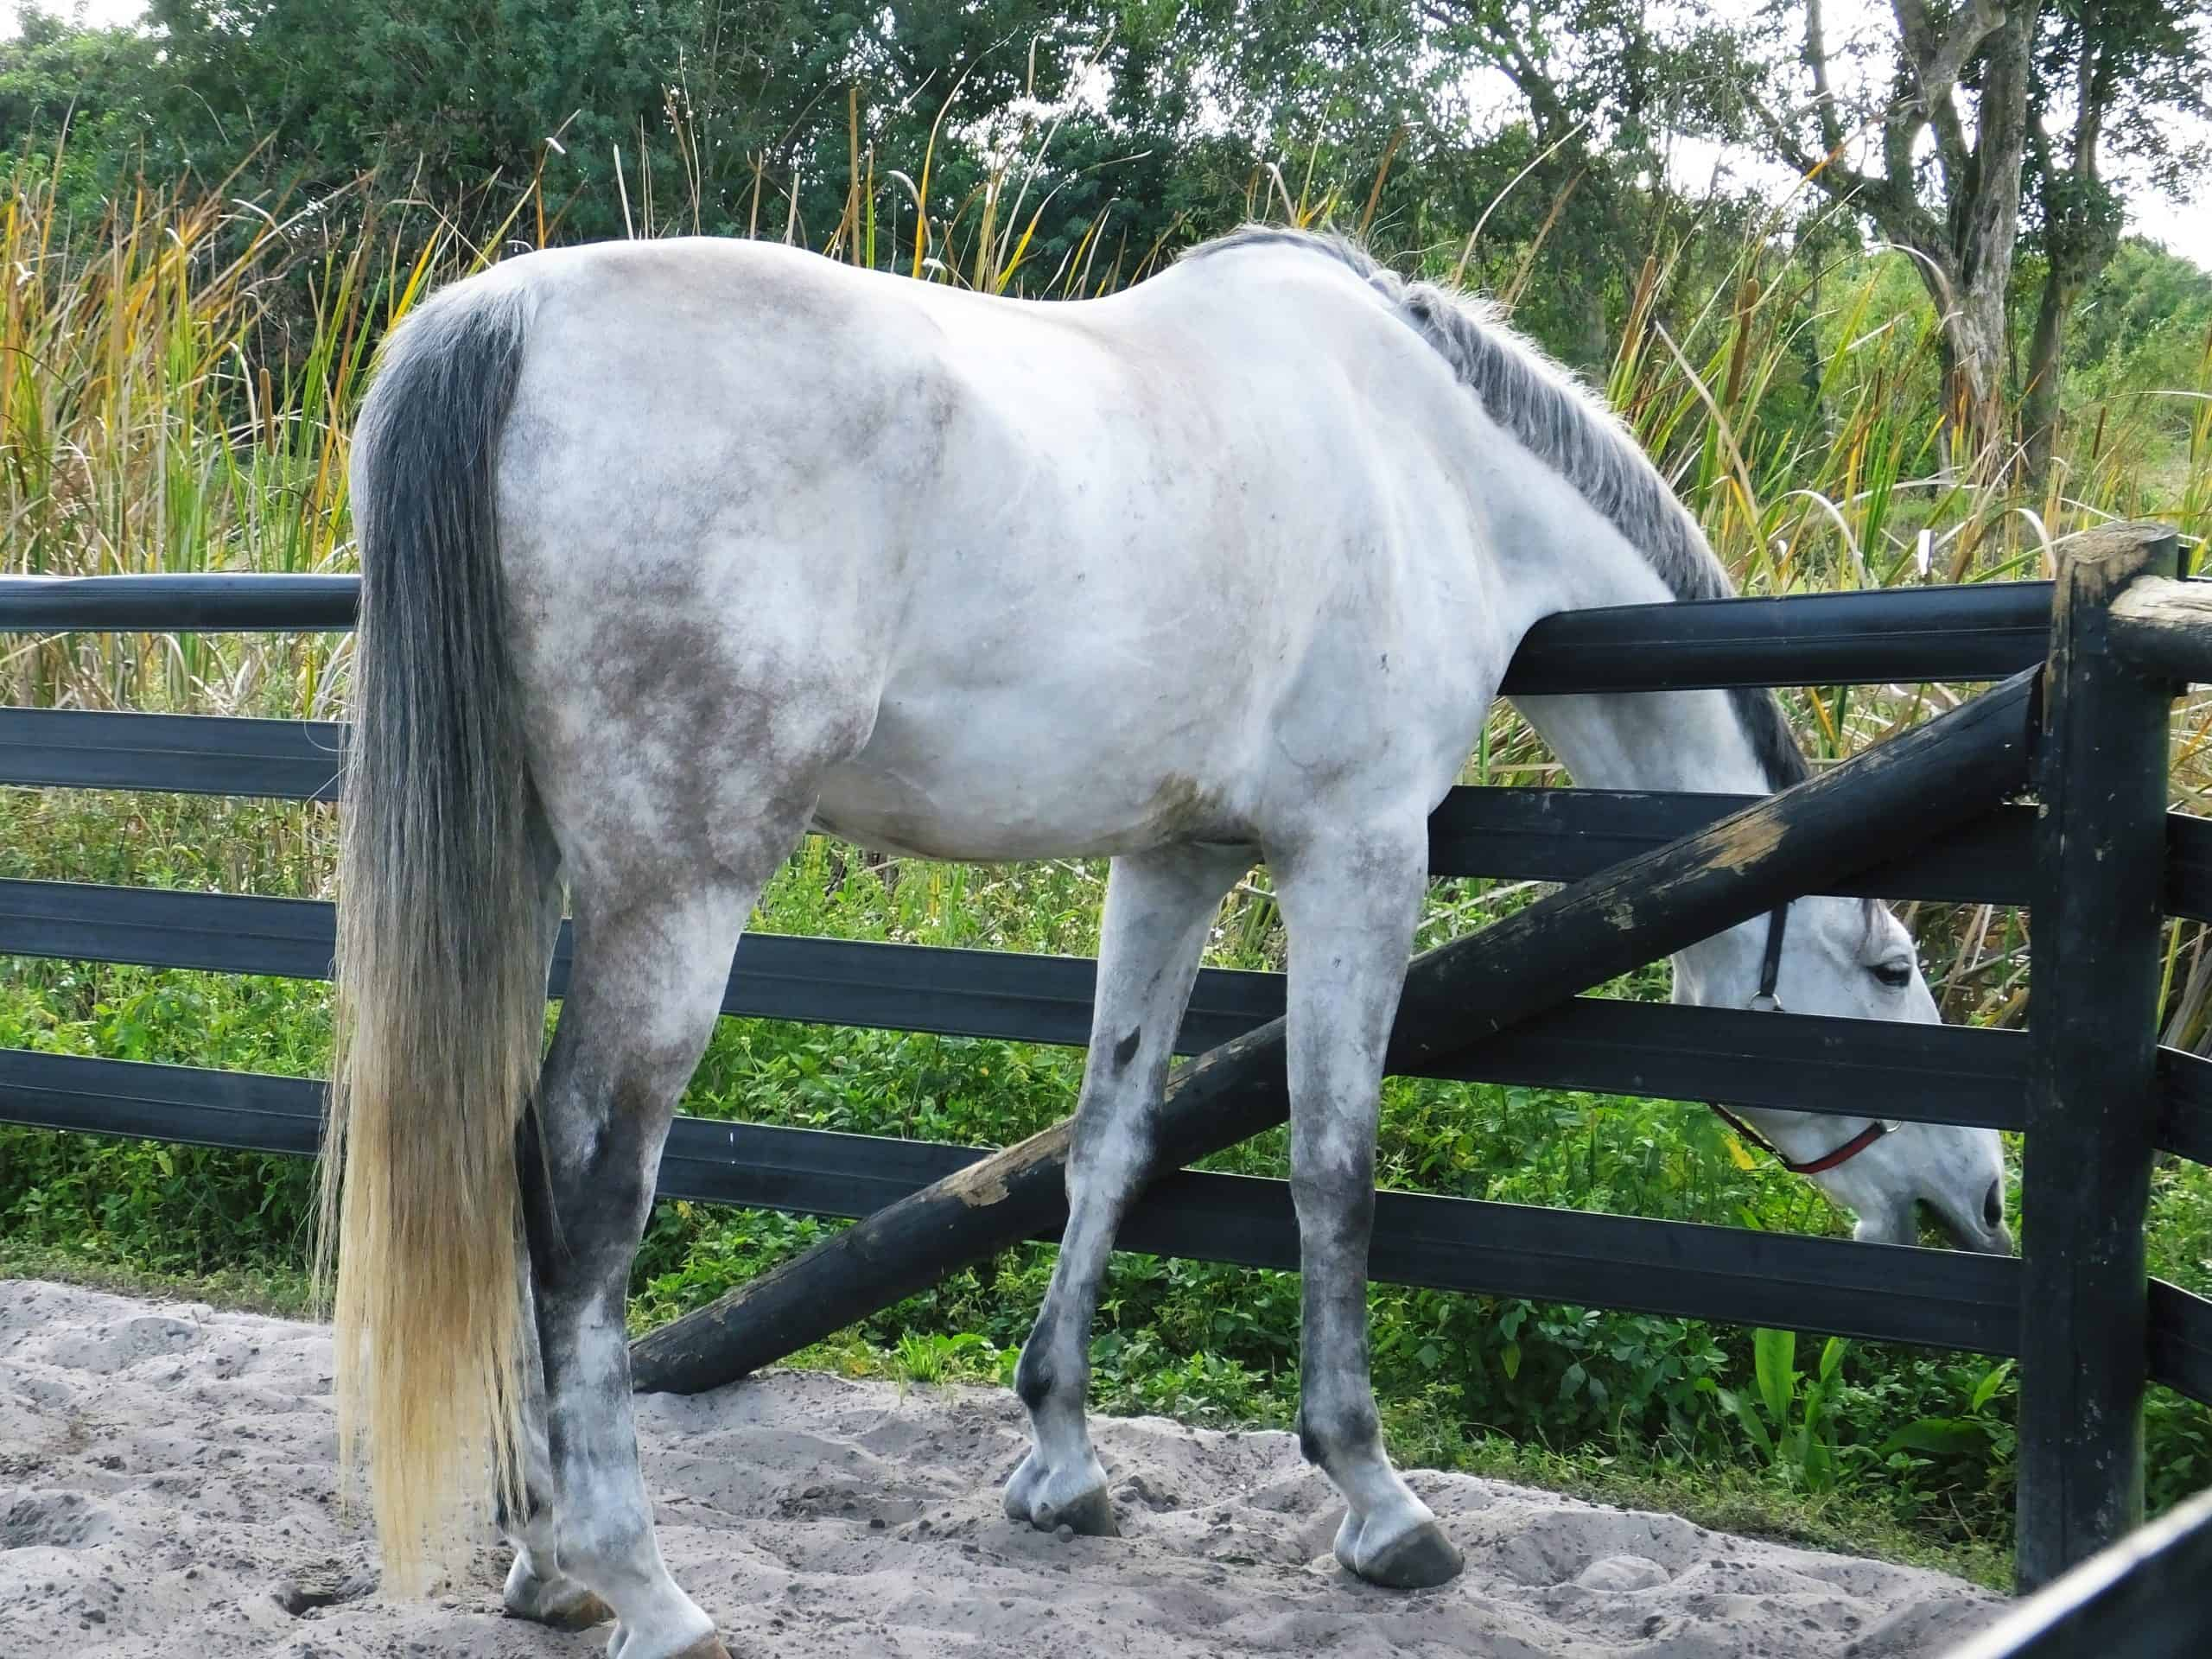 Grey colored horse in its turnout eating grass.